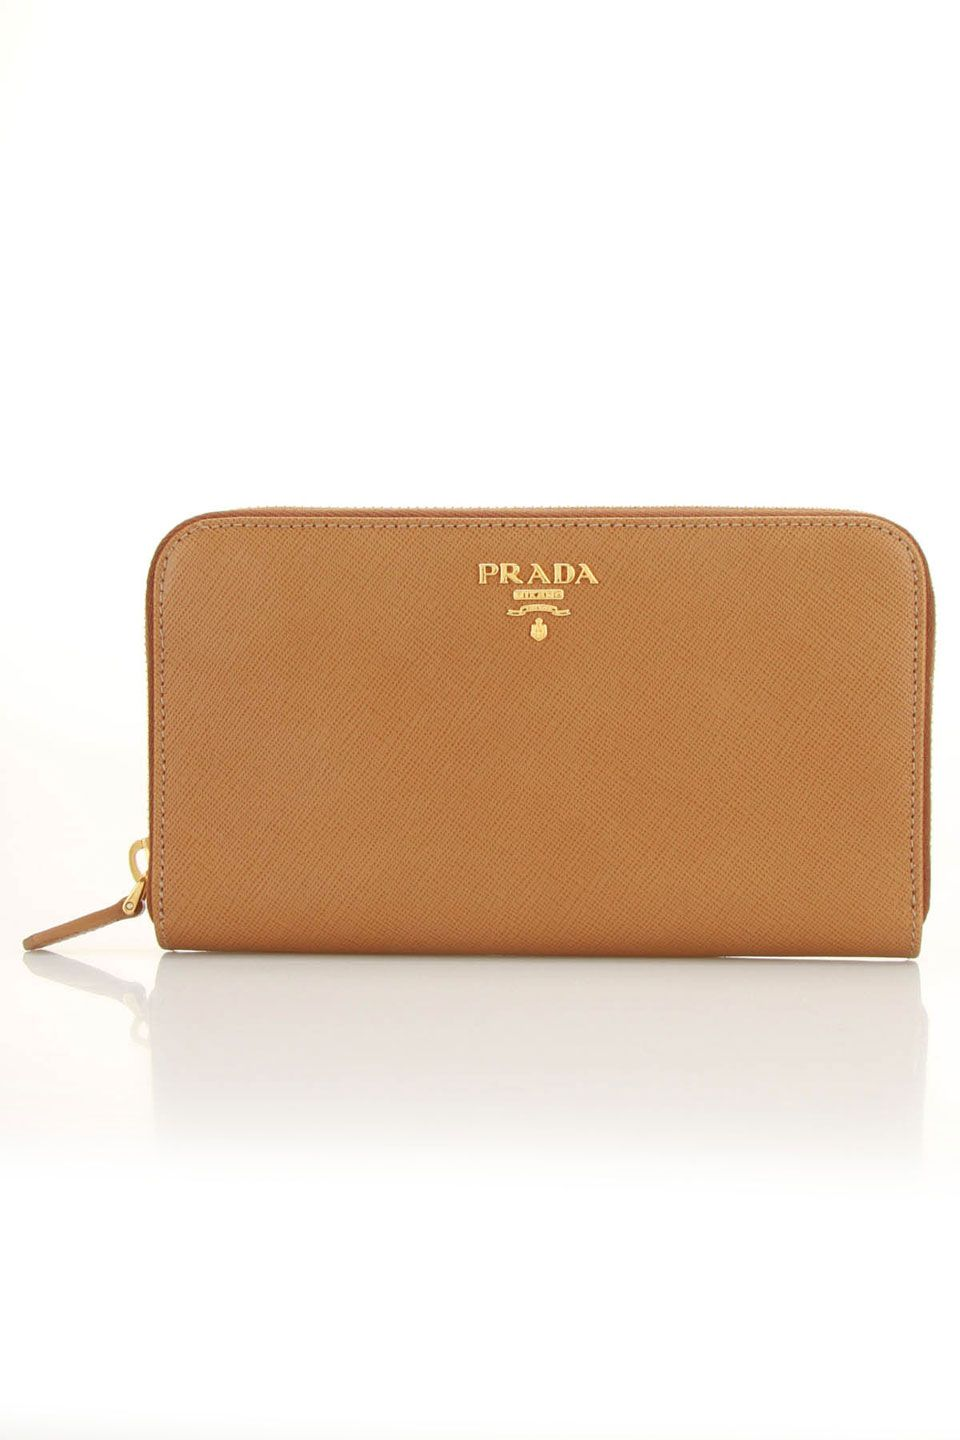 7040e4f11c98 beyondtherack.com The Prada Saffiano Metal Zipper Wallet In Gold & Caramel